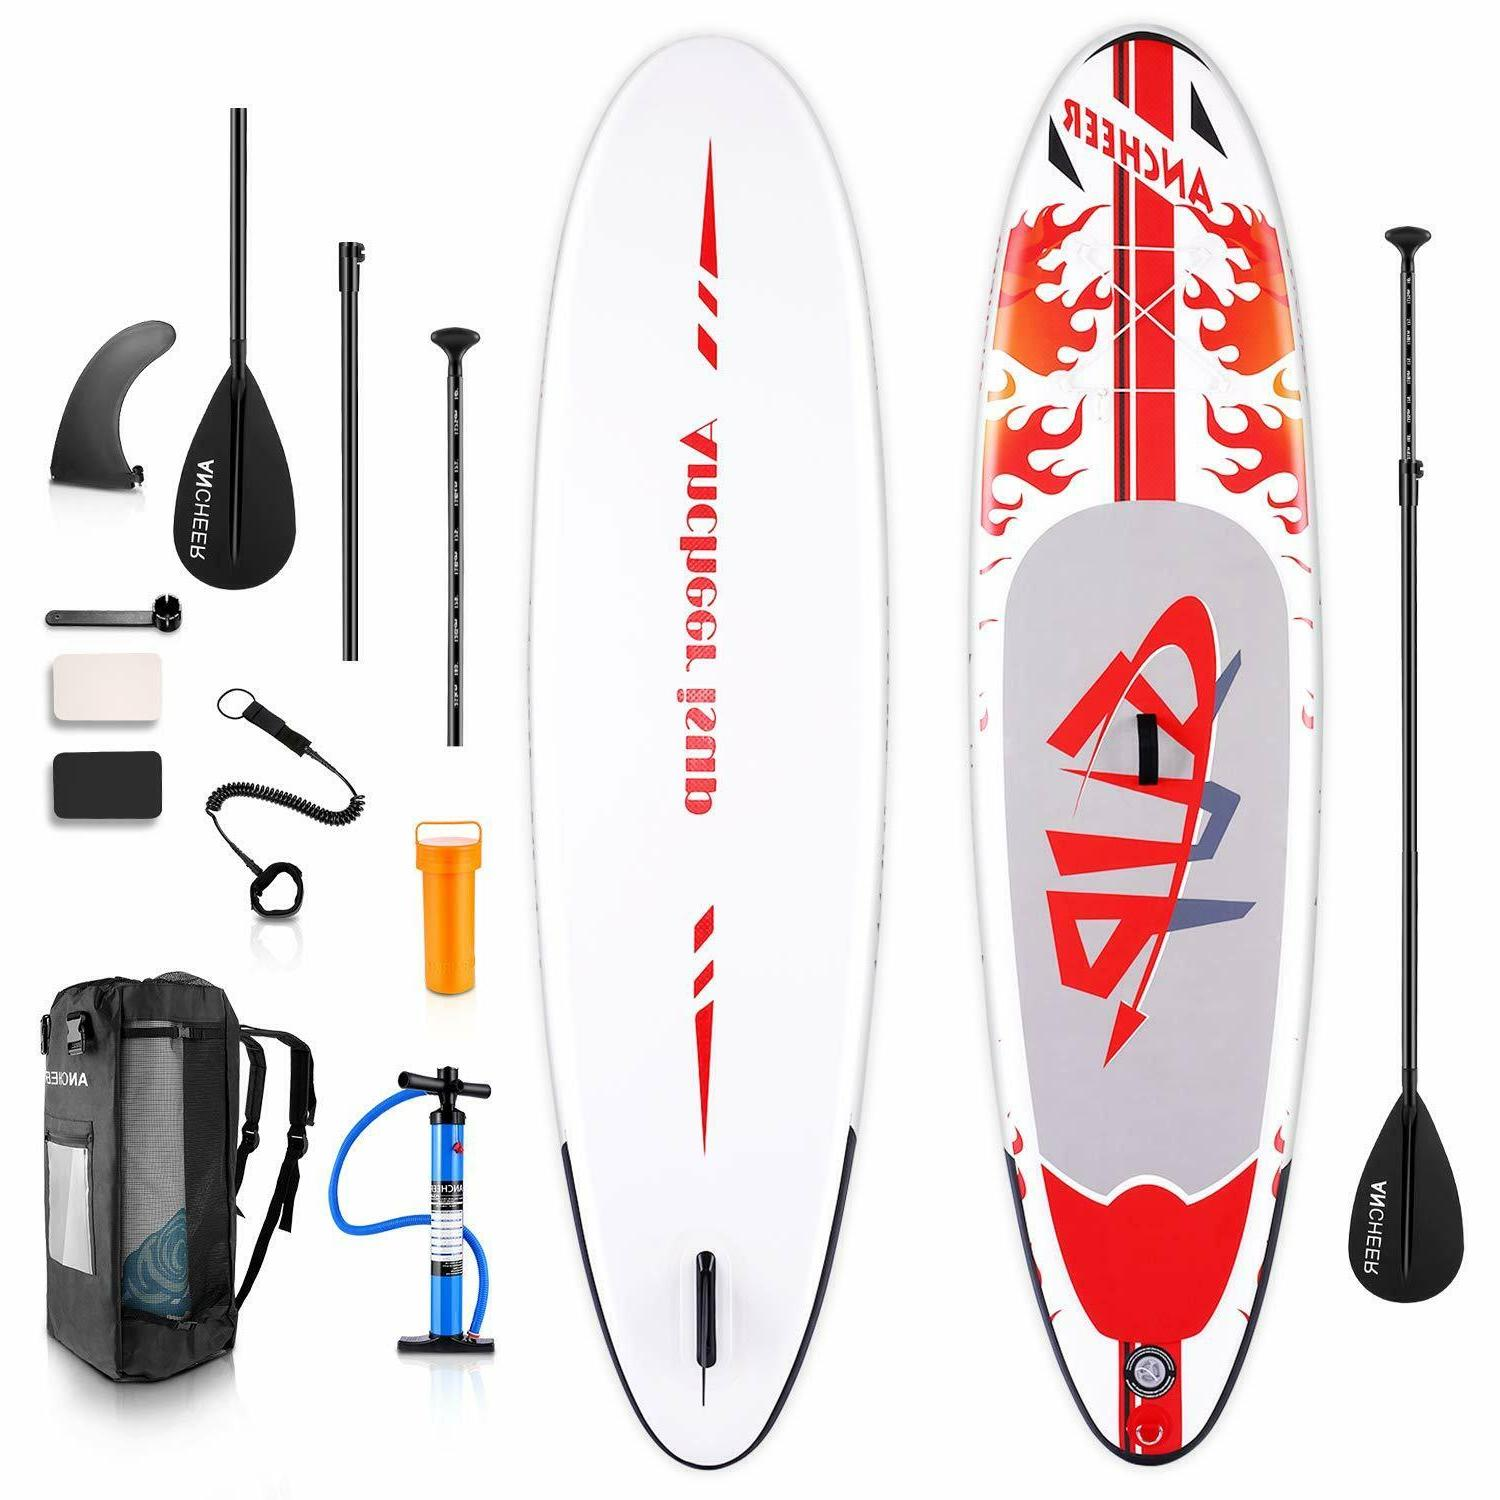 ANCHEER Inflatable Stand Up Paddle Board 10Ft. Non-Slip Deck